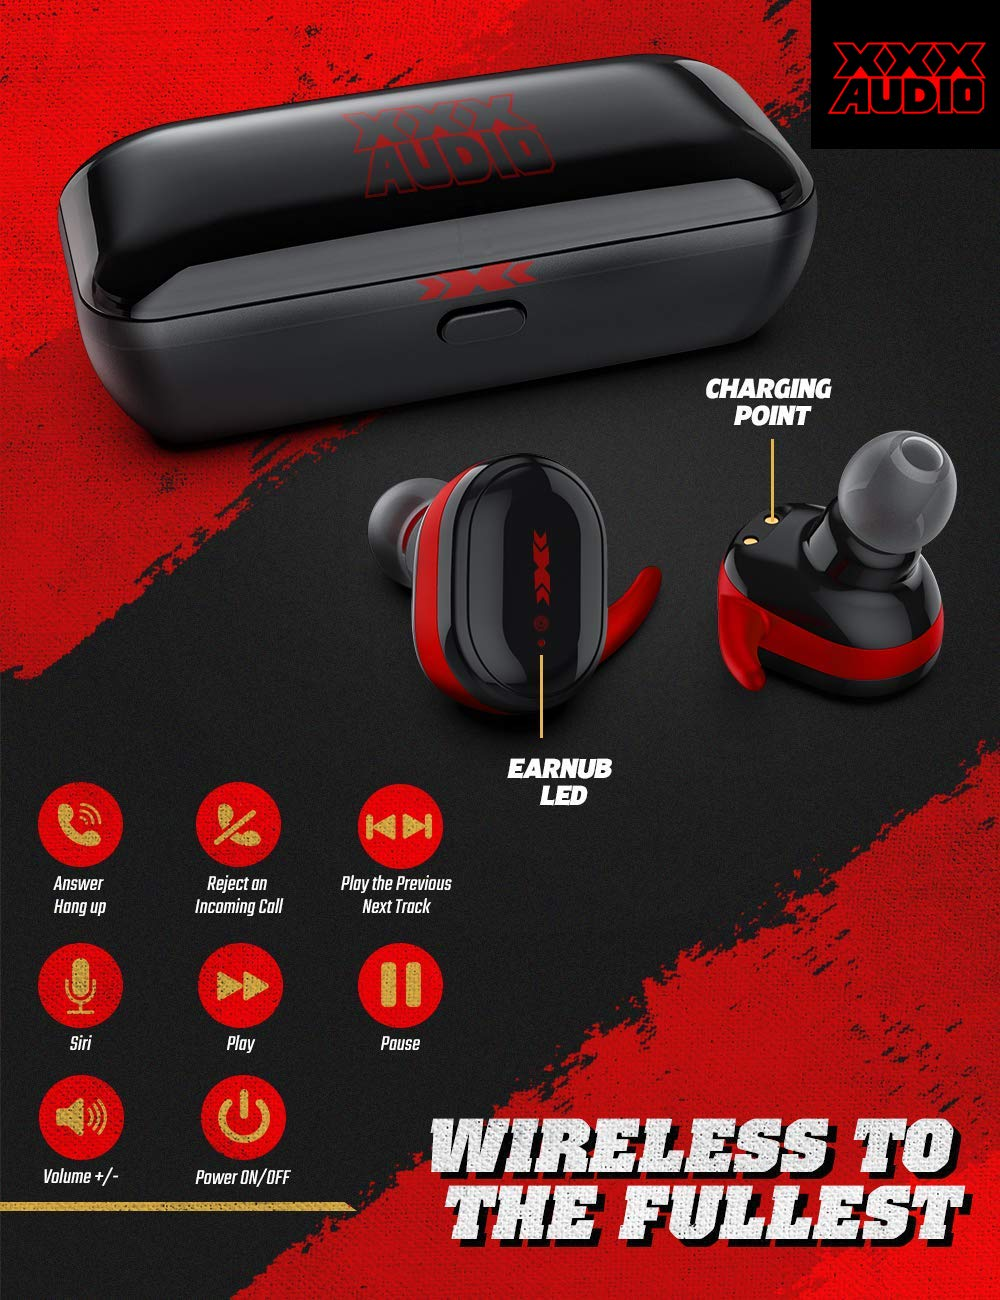 xxx-audio-true-wireless-in-ear-bluetooth-earbuds-box